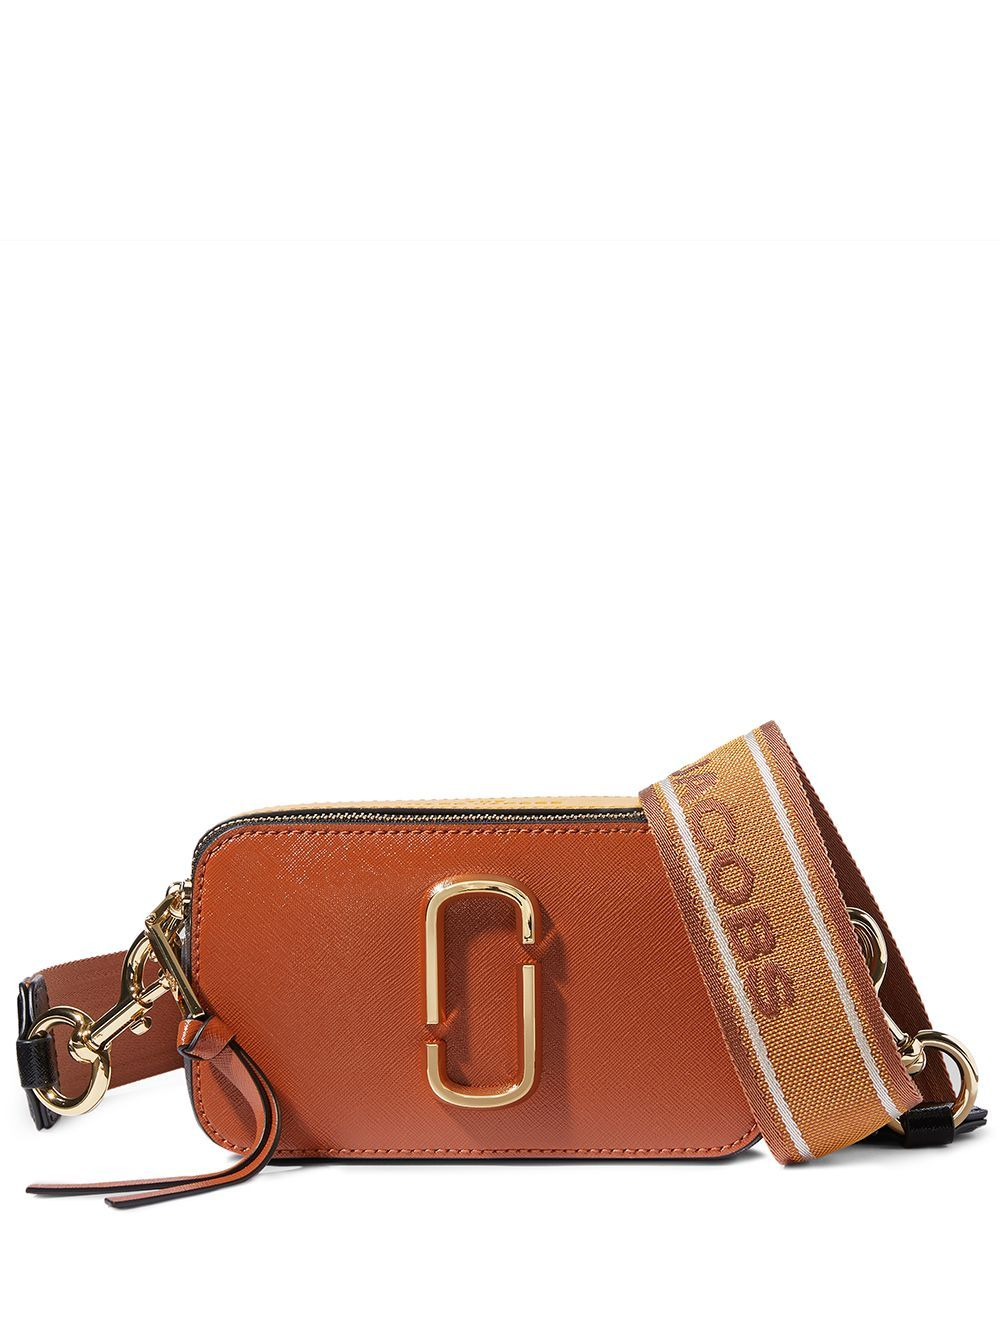 Orange The Snapshot camera bag from Marc Jacobs featuring gold-tone logo plaque, debossed logo, top